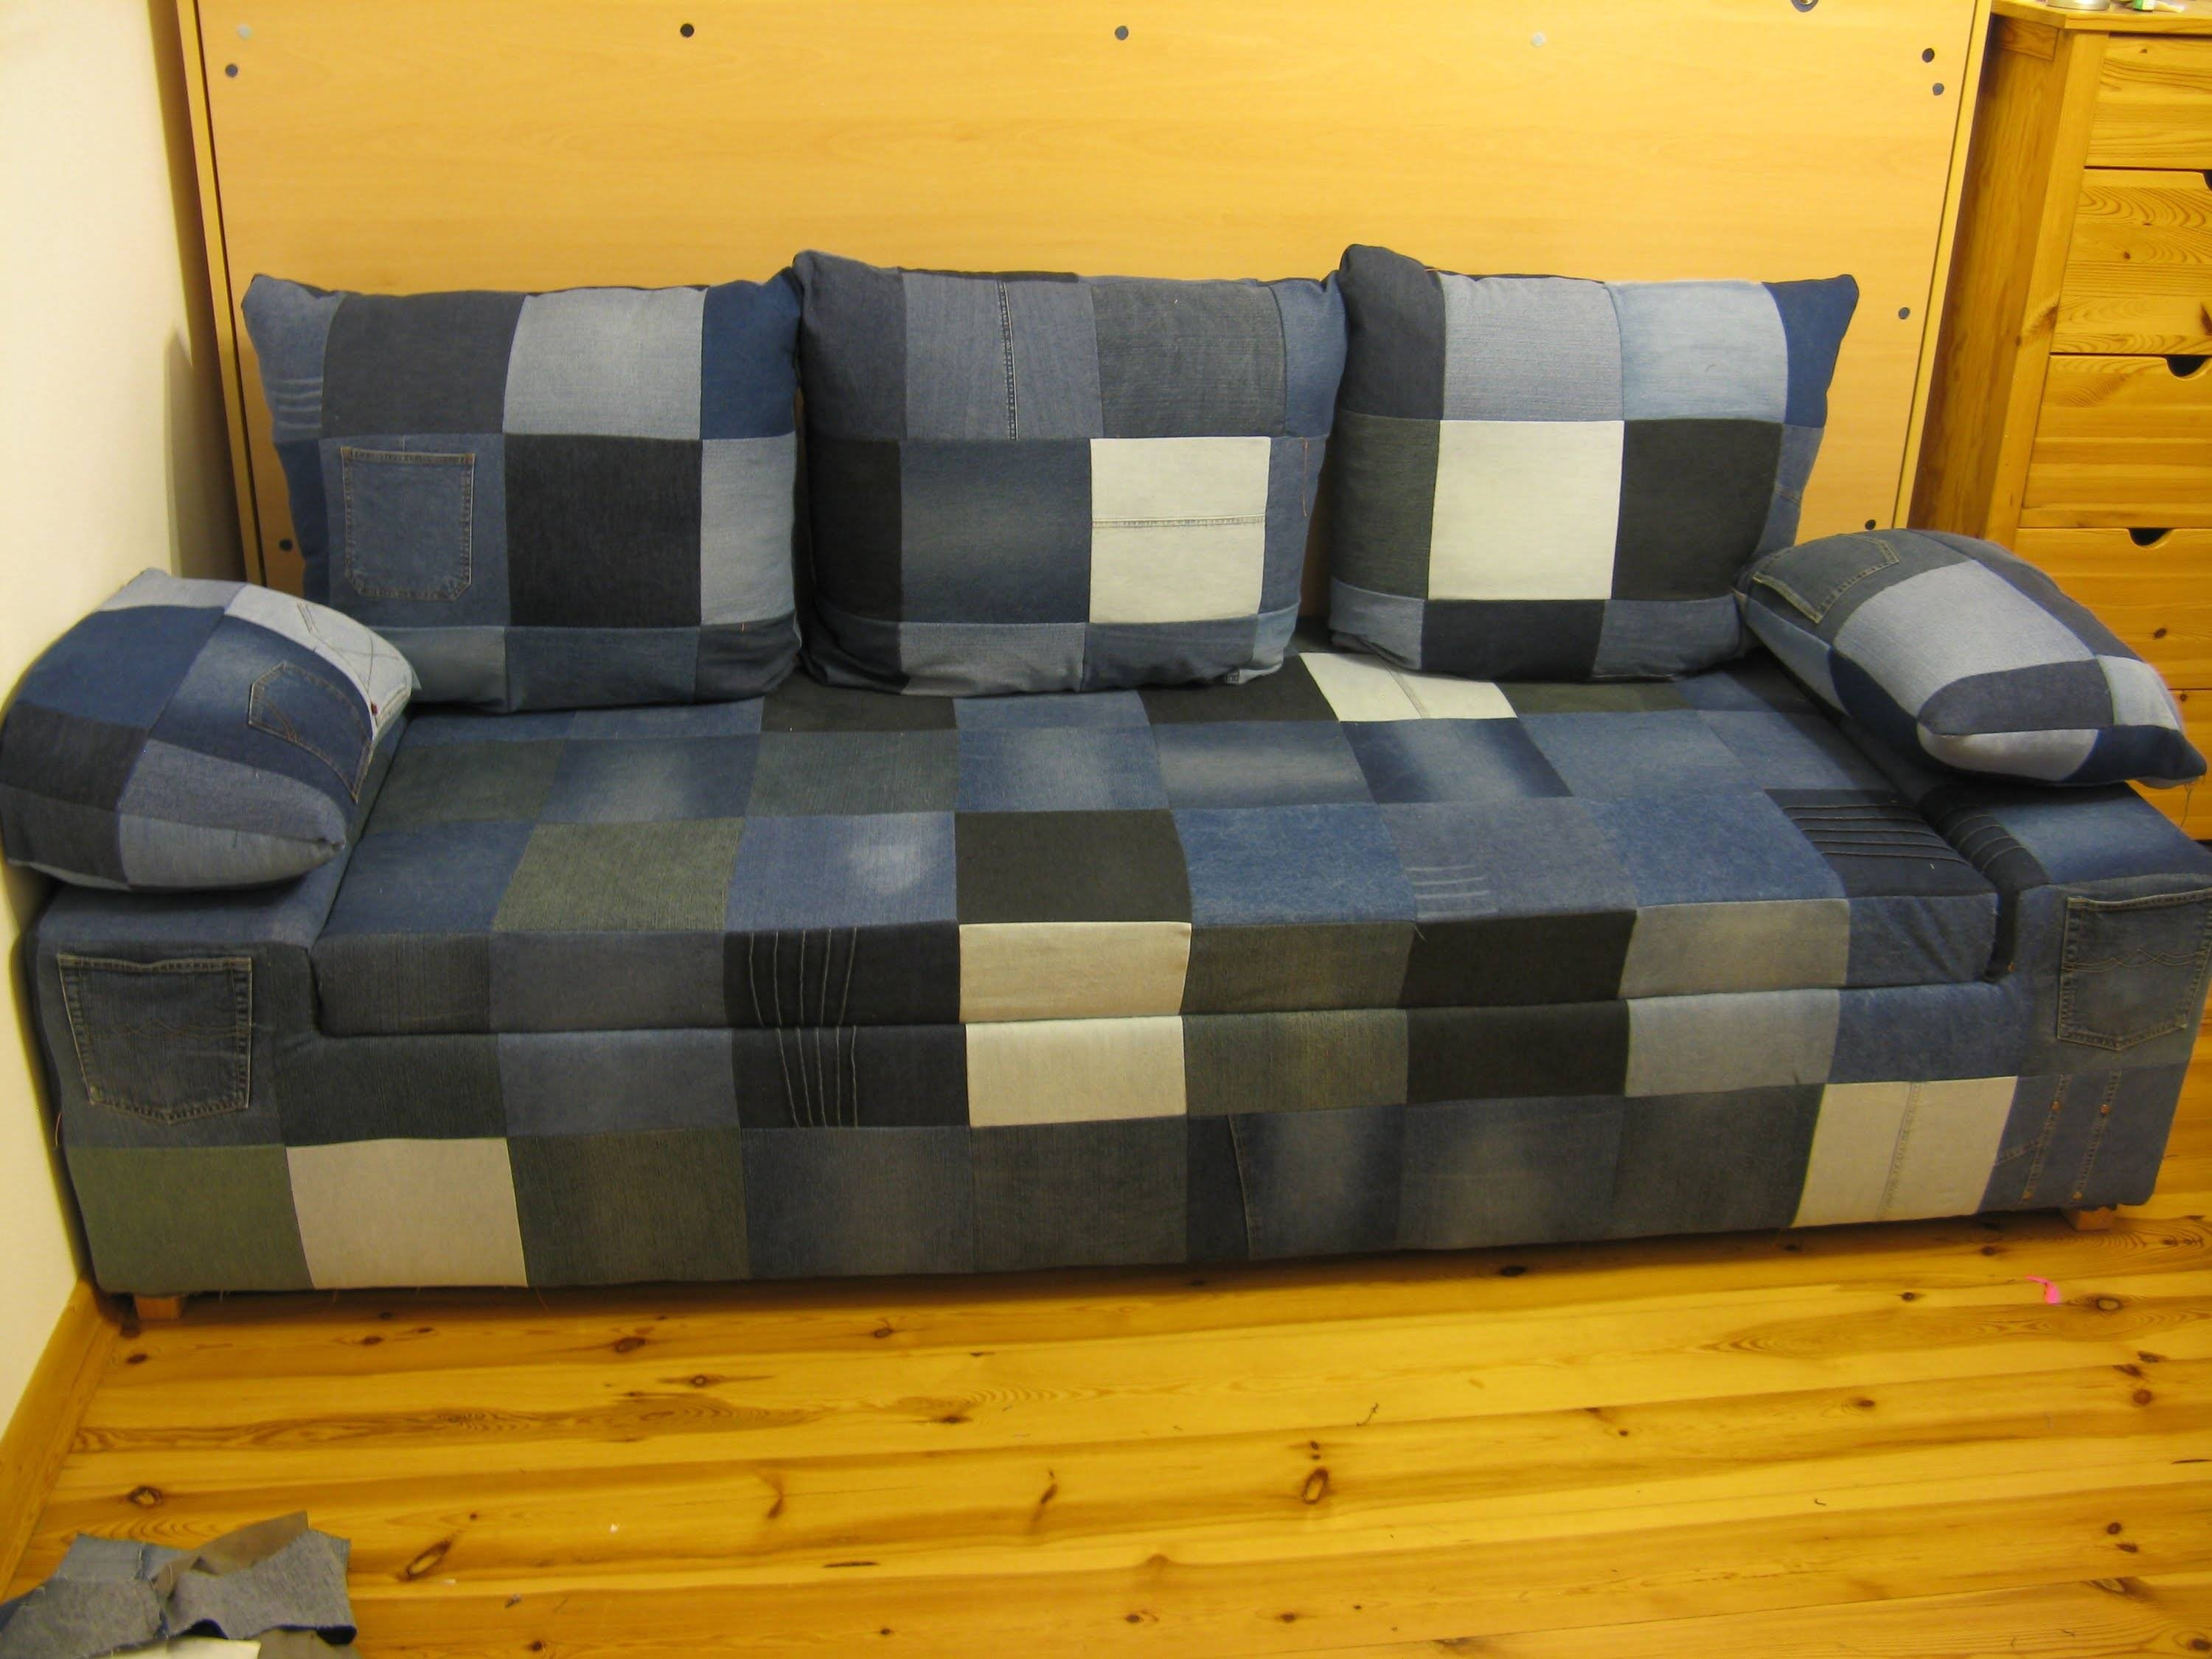 Diy Jeans Sofa. Build A Simple, Comfortable Jeans Sofa With Simple pertaining to Blue Jean Sofas (Image 9 of 15)